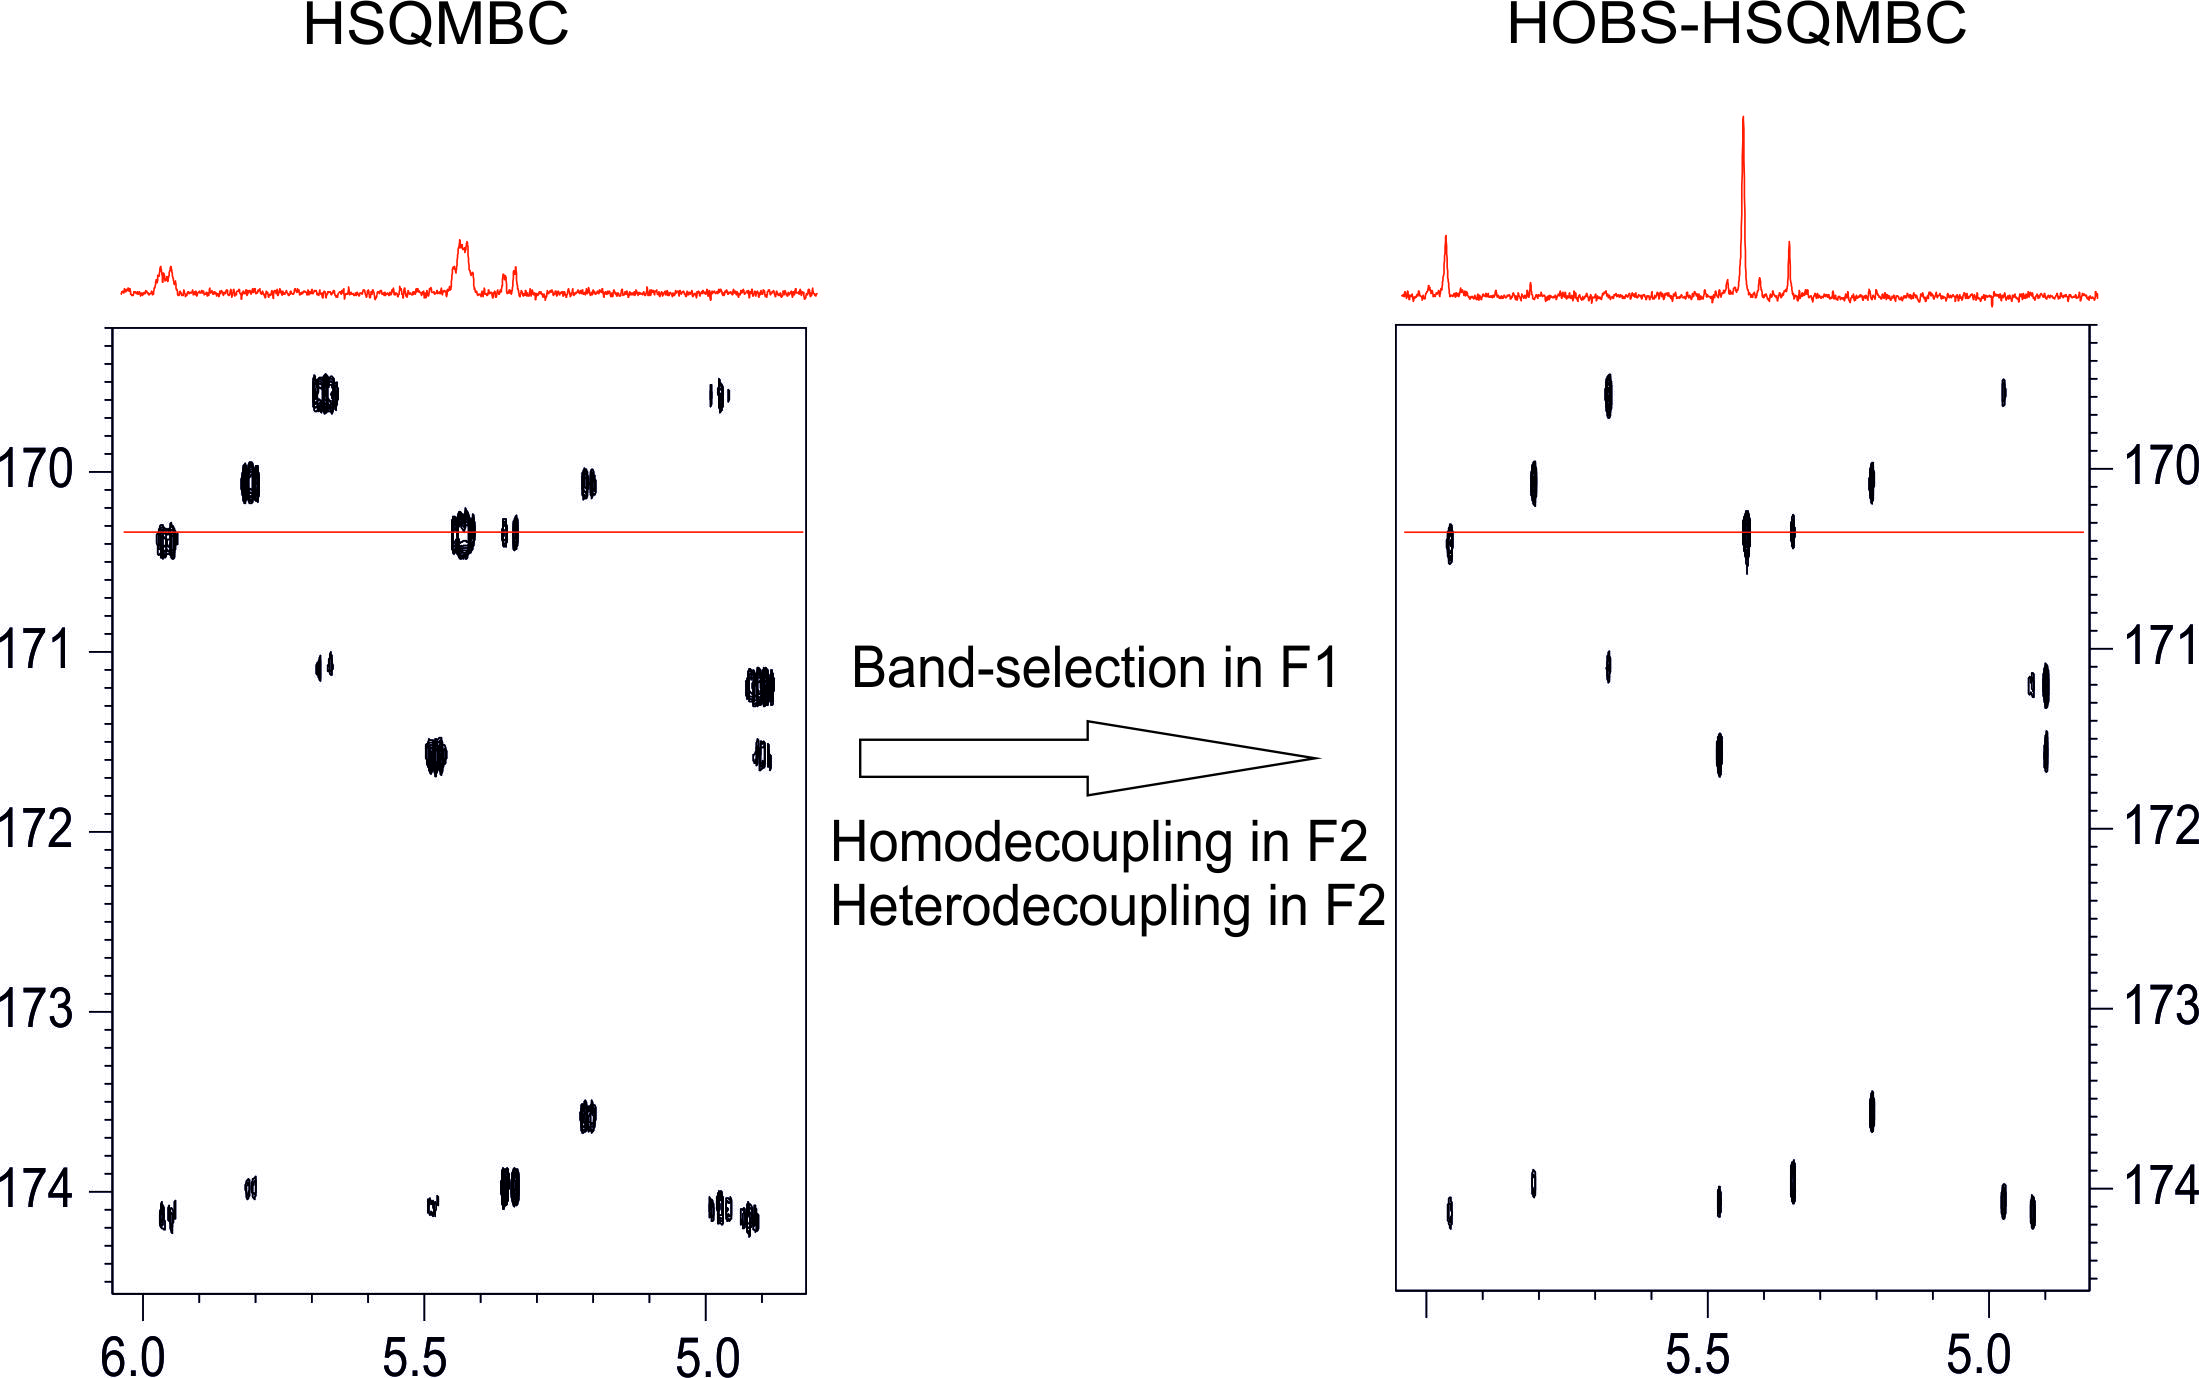 Implementing homo- and heterodecoupling in region-selective HSQMBC experiments